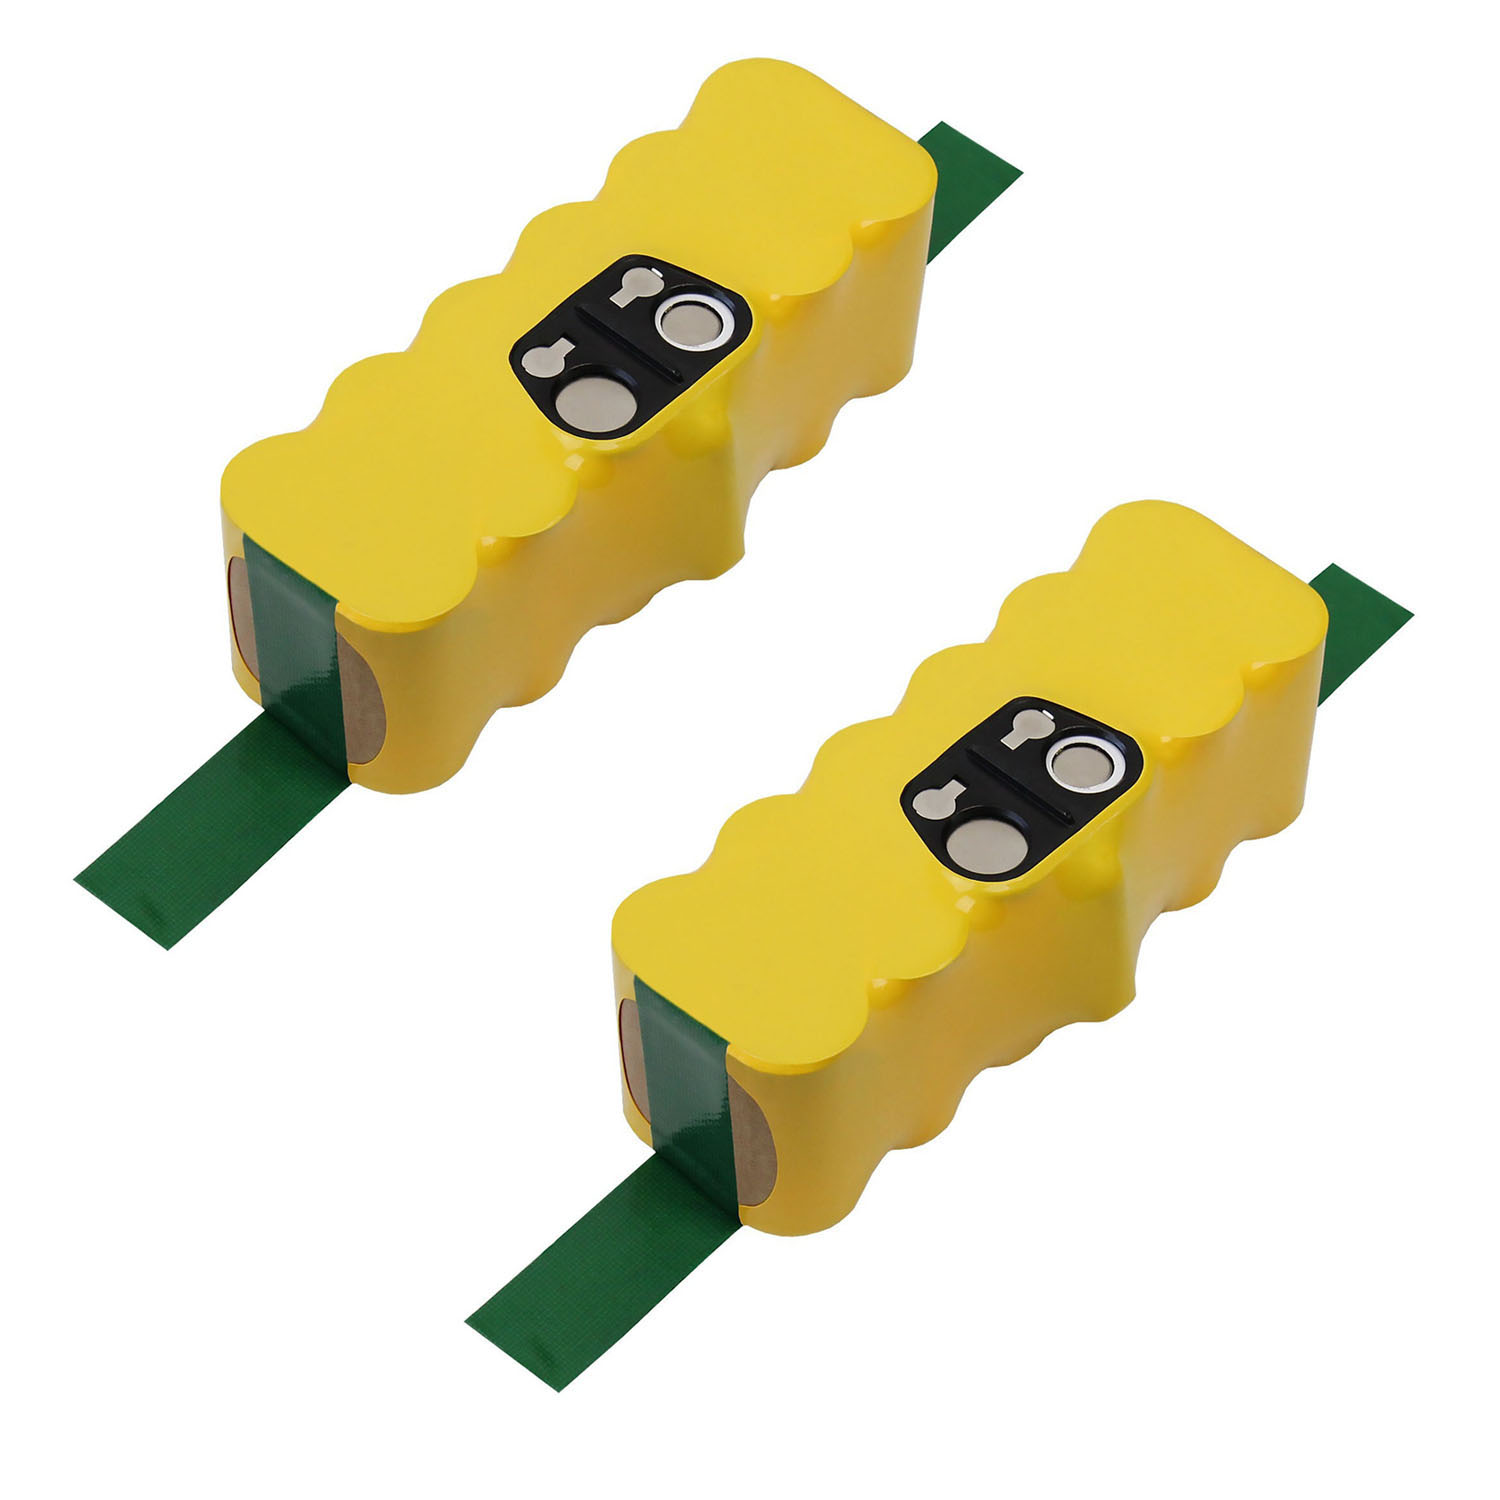 Roomba 500 600 700 APS Replacement Battery for 555 595 620 630 650 660 790 - 2 Pack